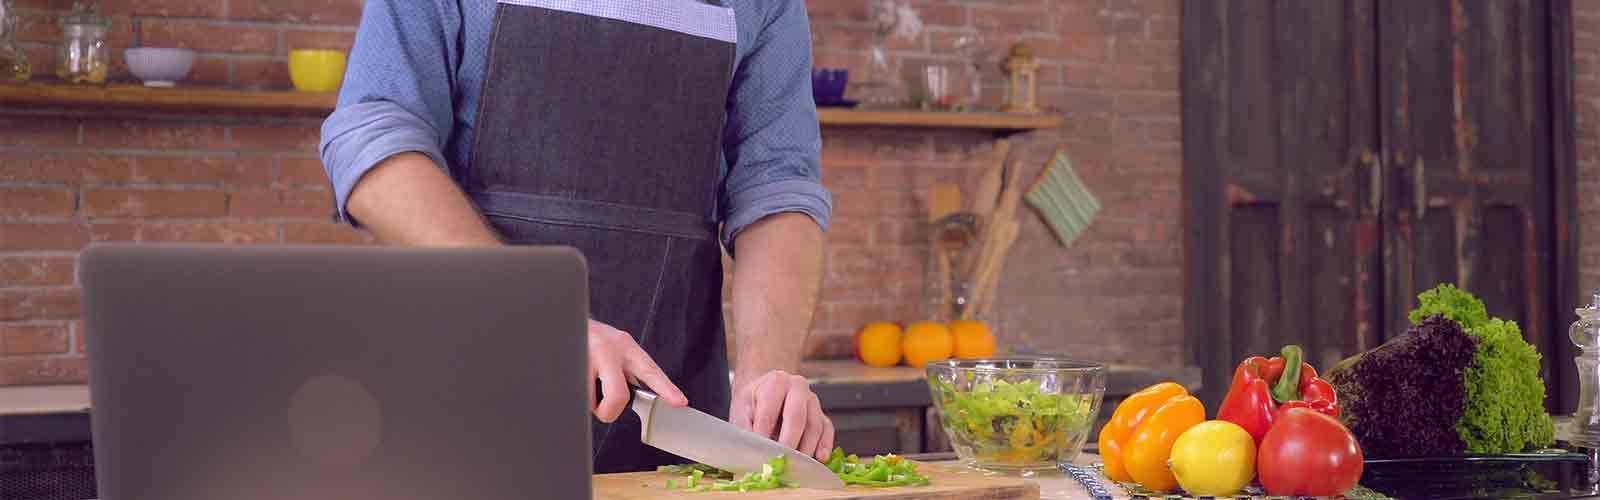 Man taking online cooking class